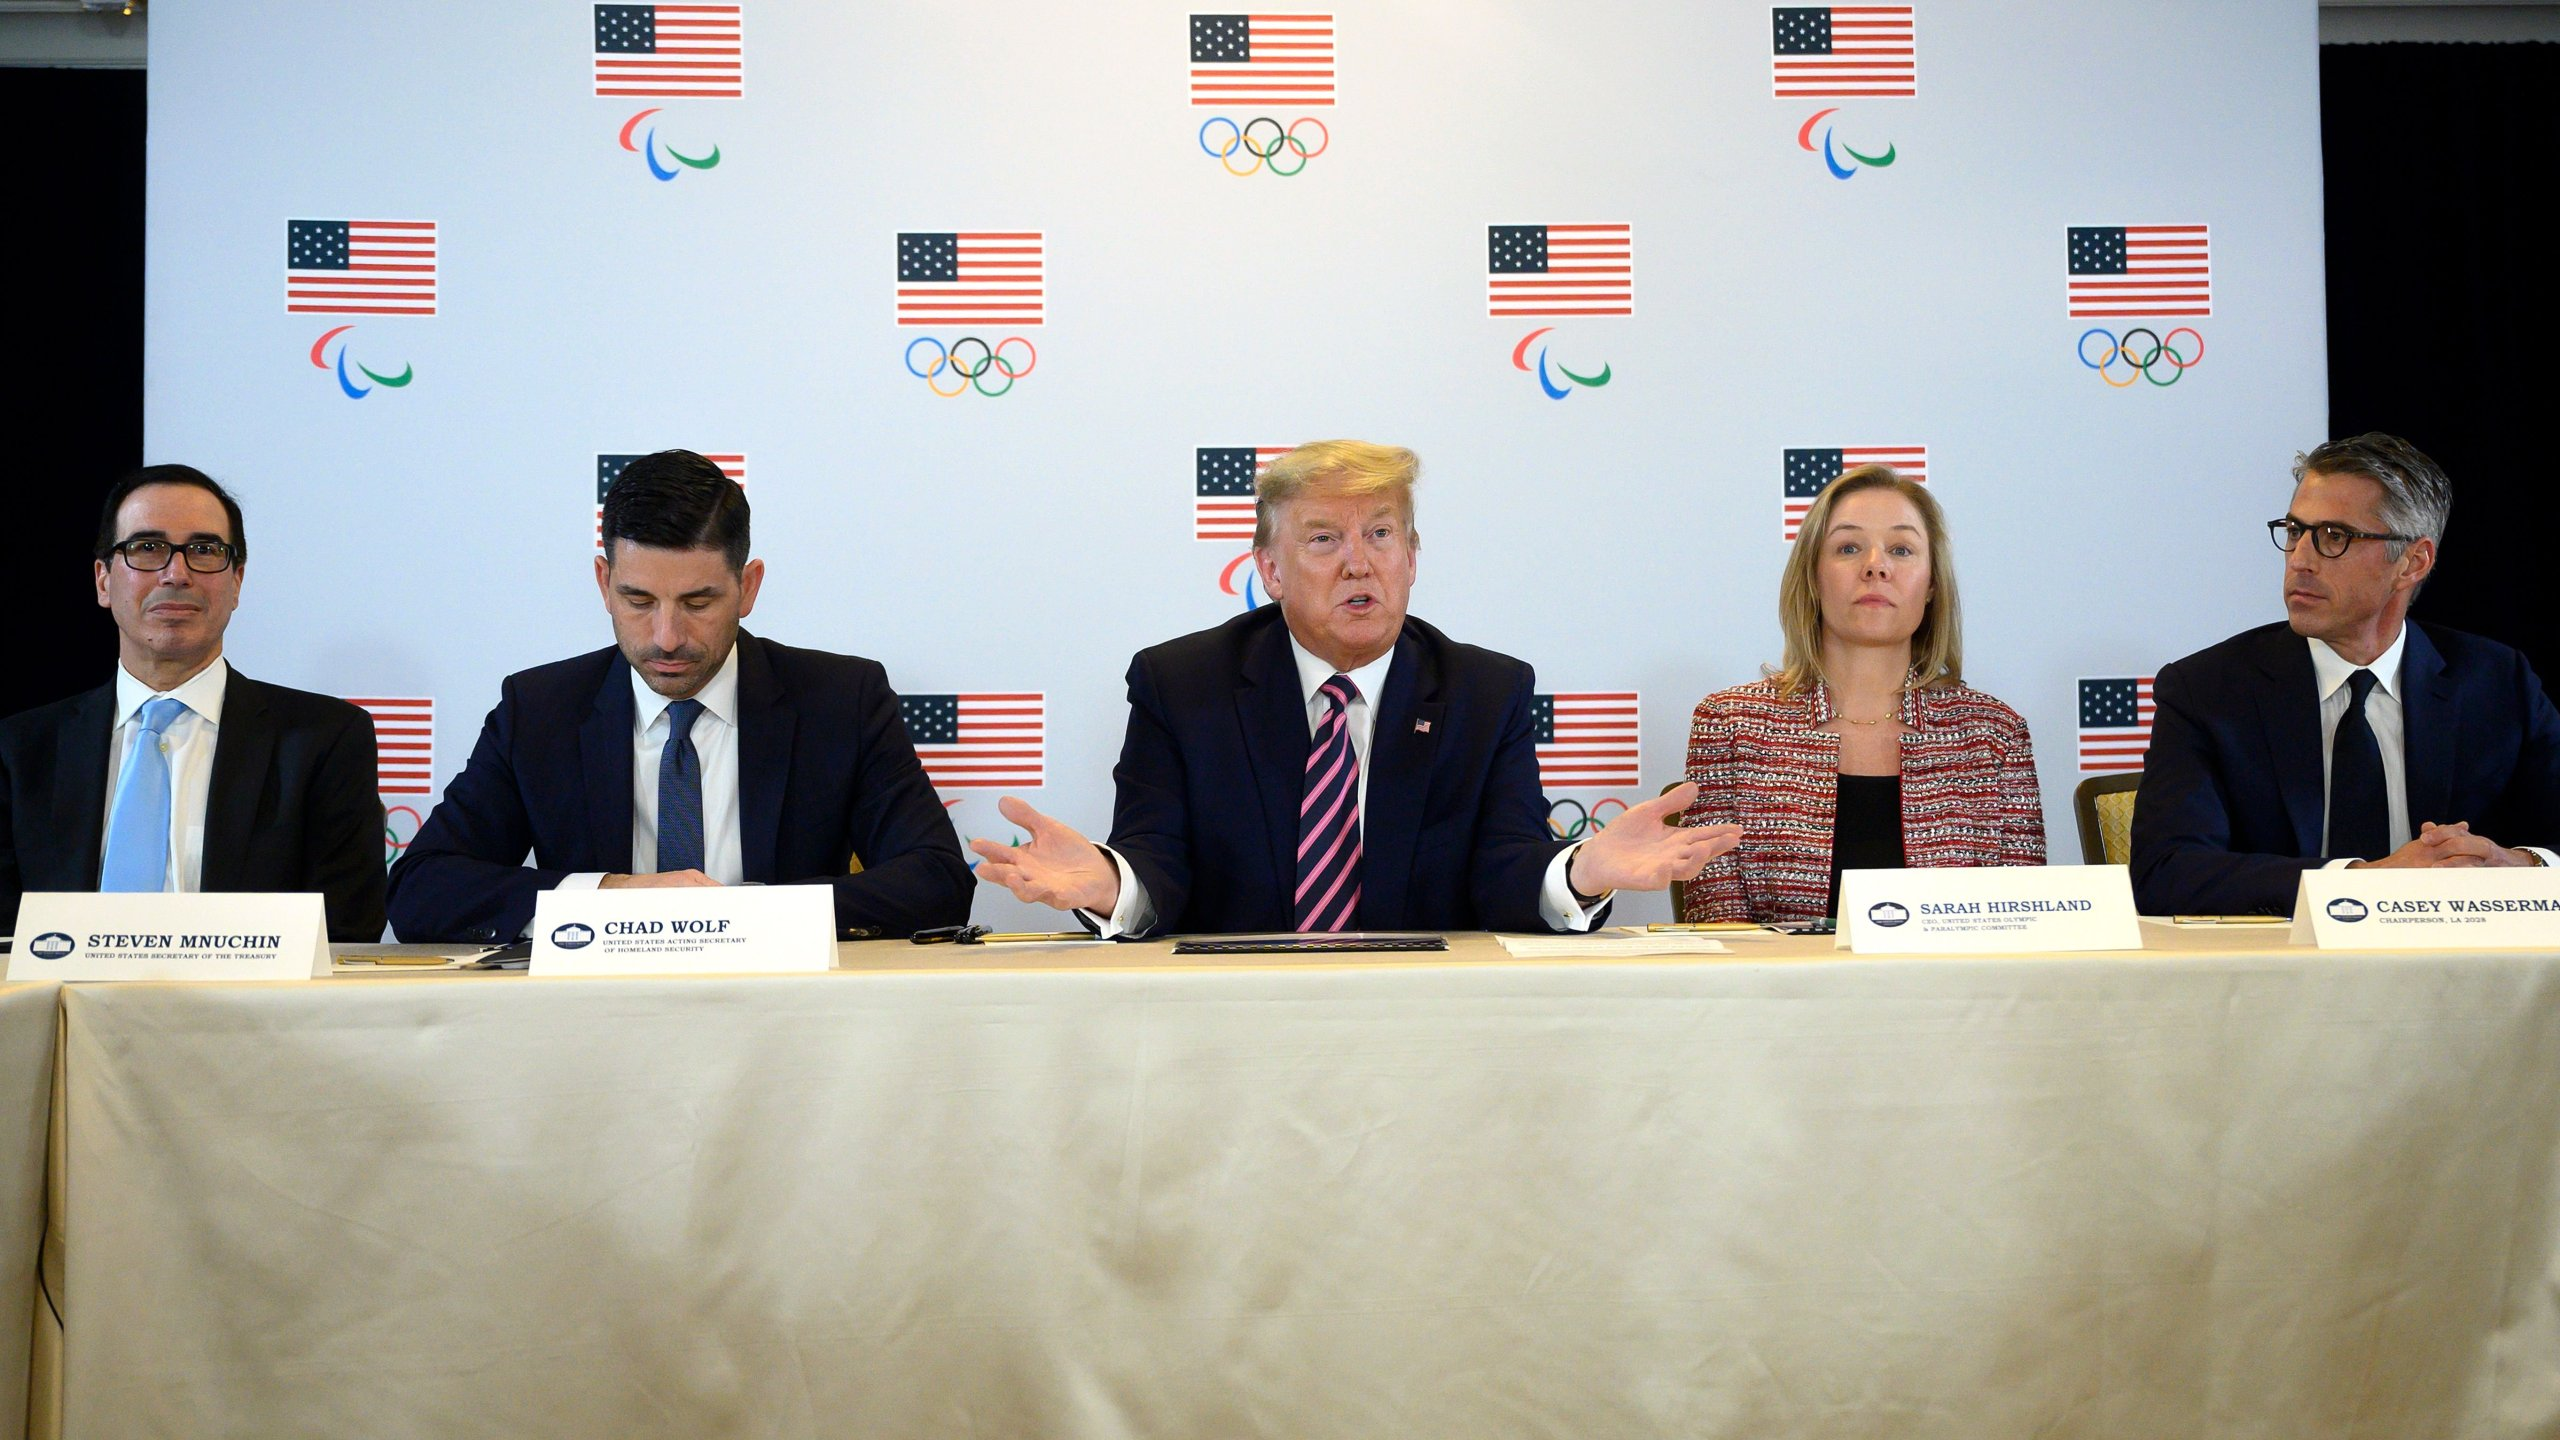 Treasury Secretary Steven Mnuchin, Acting Homeland Security Secretary Chad Wolf, US President Donald Trump, US Olympic & Paralympic Committee CEO Sarah Hirshland and Chairman of LA 2028 Casey Wasserman participate in a briefing with the US Olympic and Paralympic Committee and LA 2028 Organizers in Beverly Hills on Feb. 18, 2020. (Credit: JIM WATSON/AFP via Getty Images)